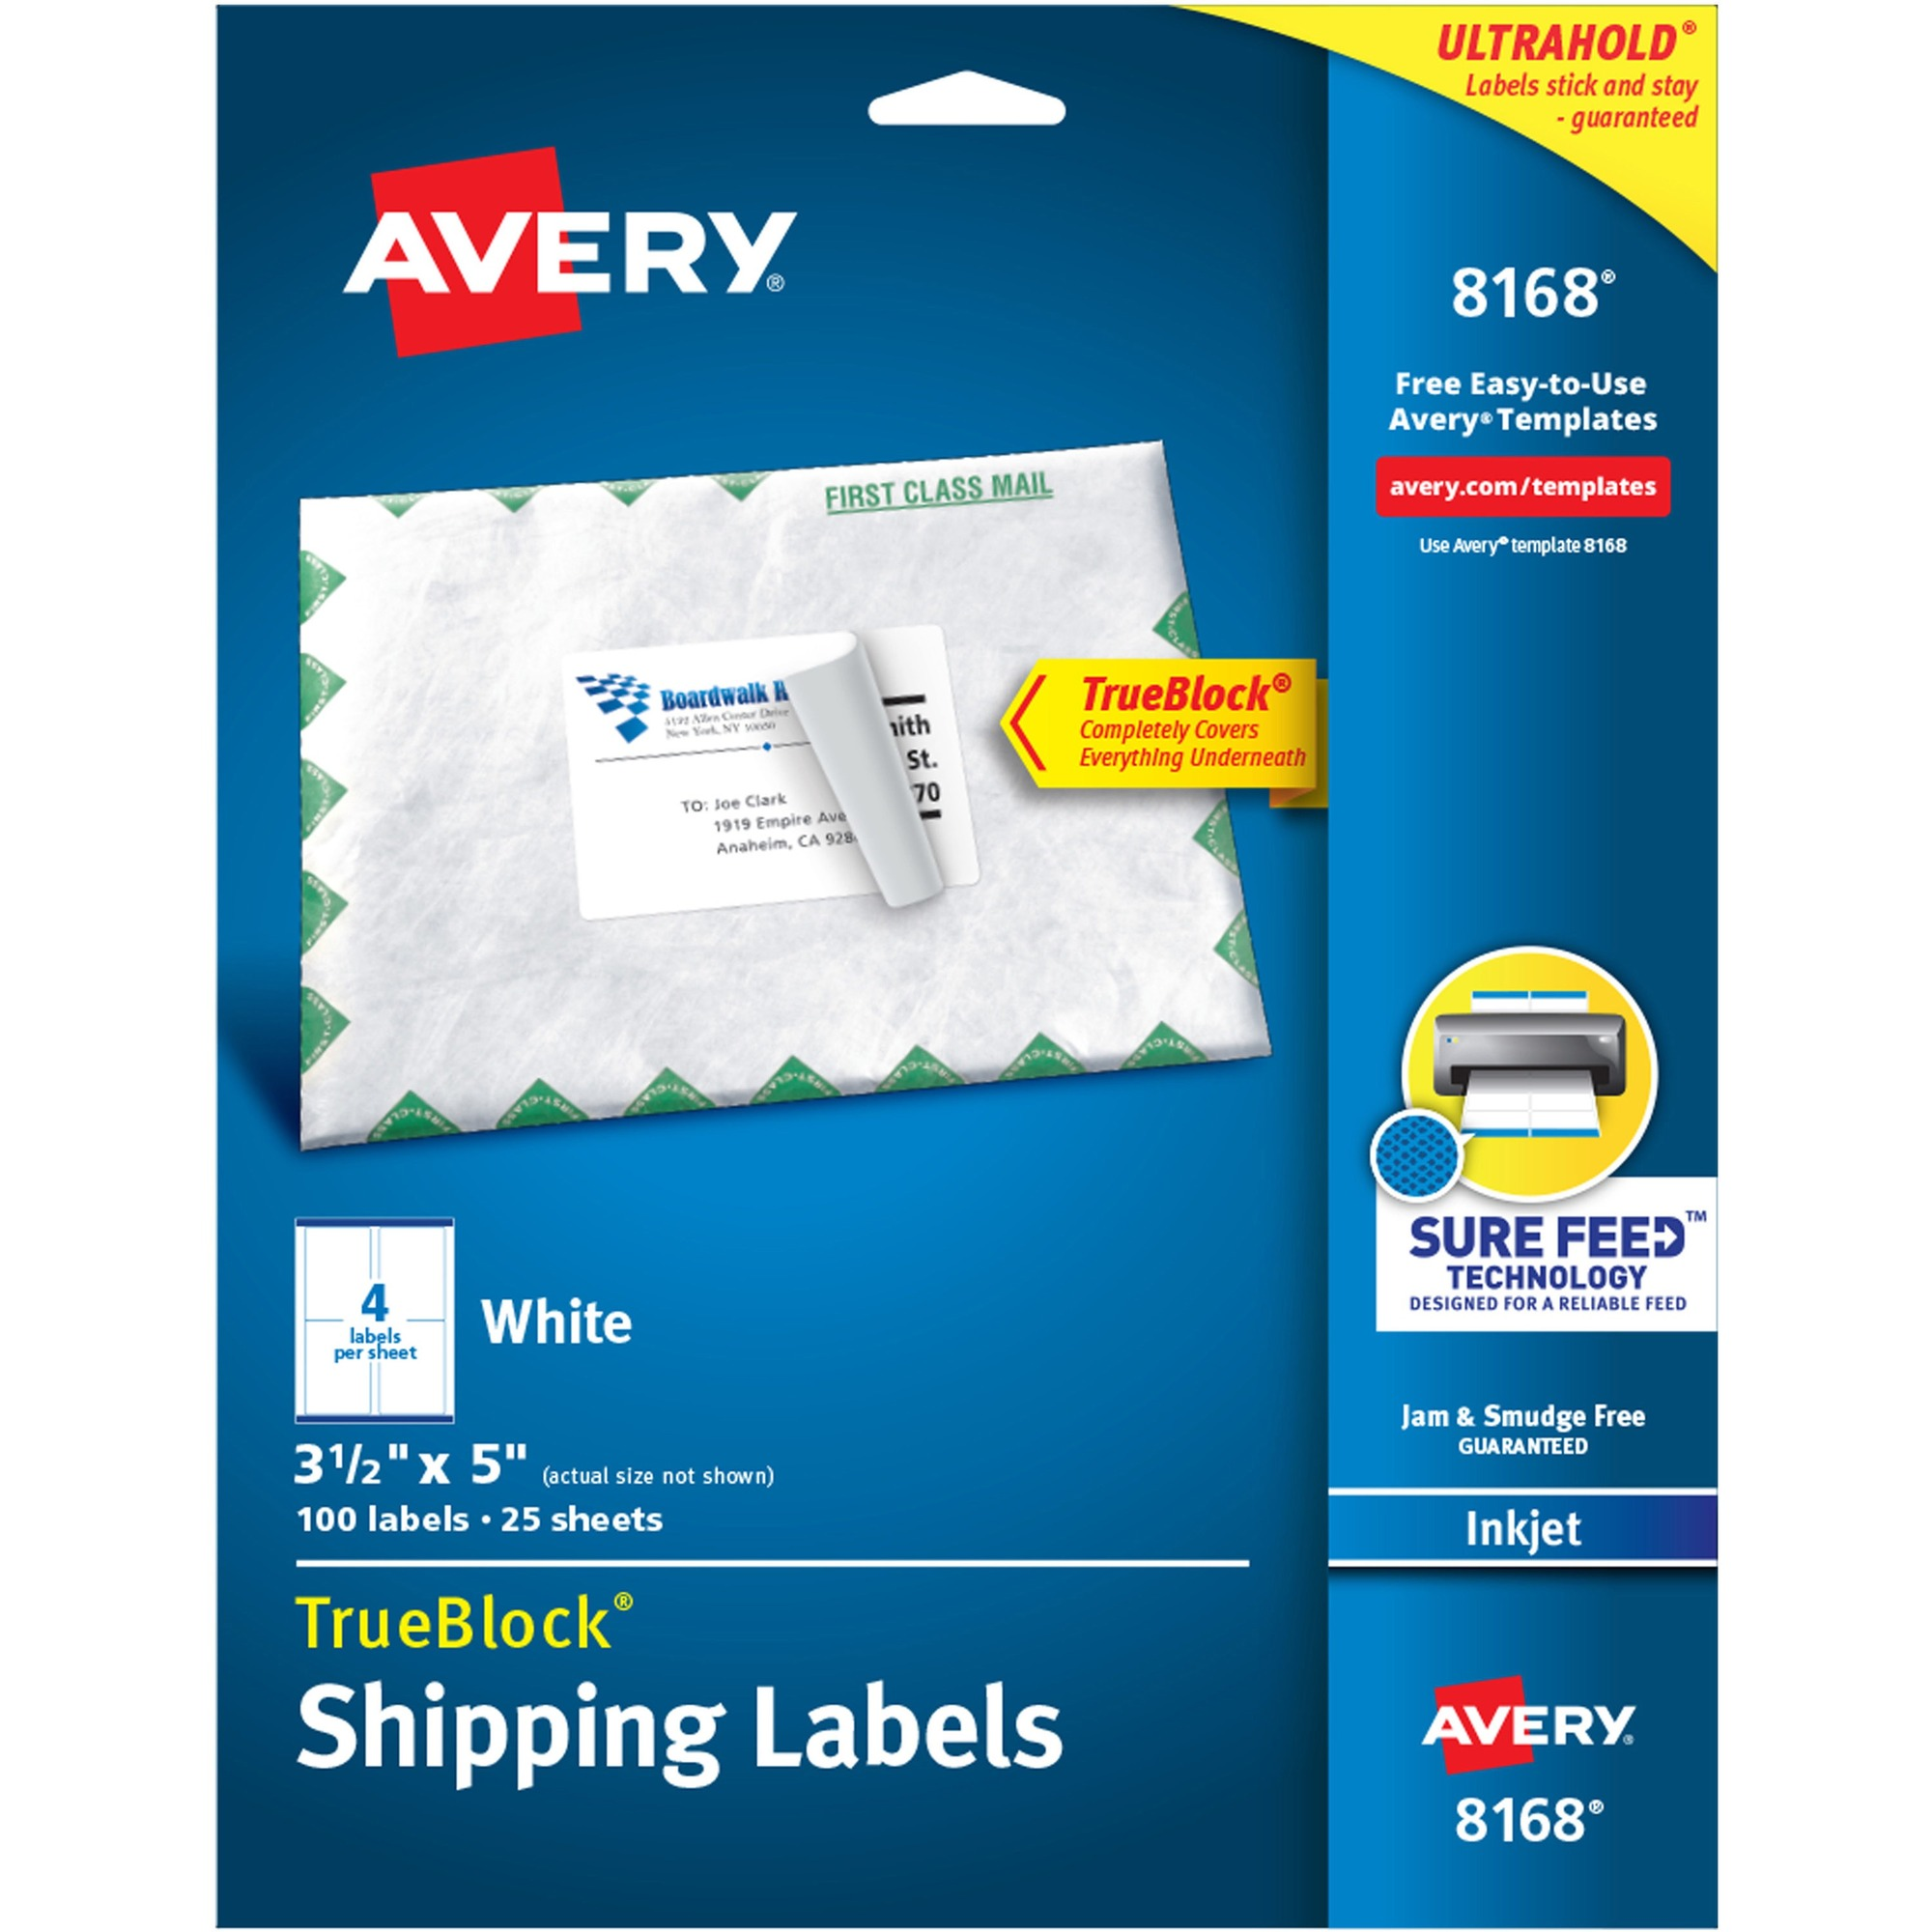 Avery 2X4 Label Template from content.etilize.com